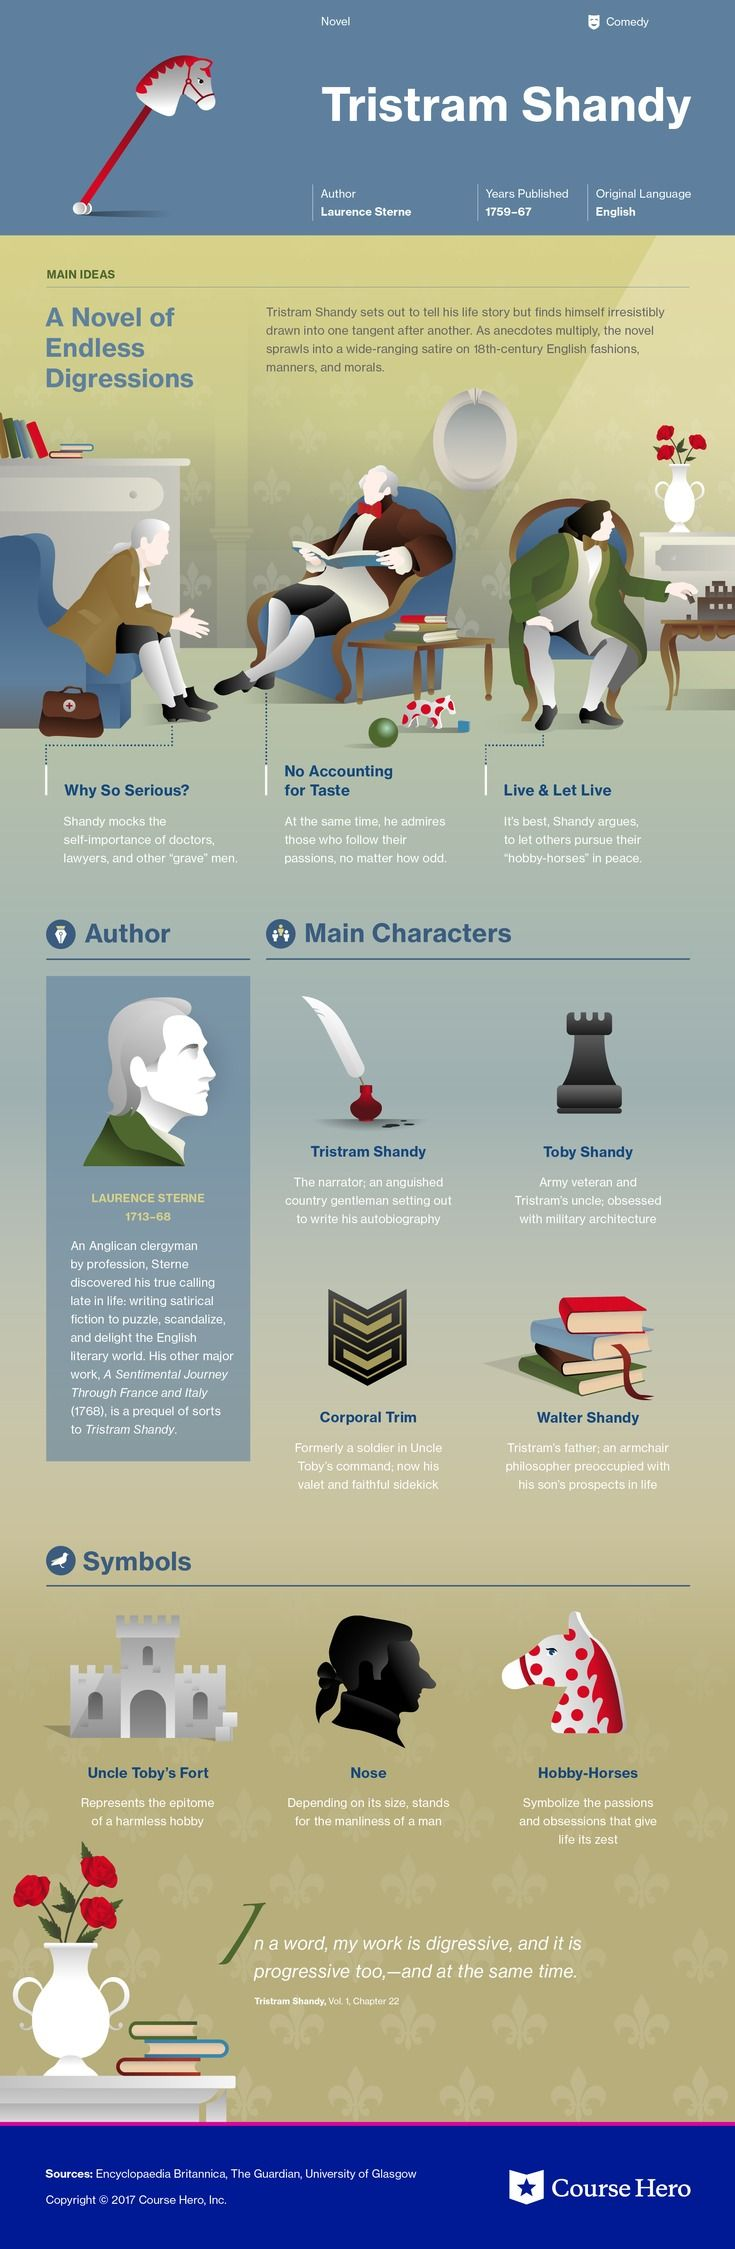 This @CourseHero infographic on Tristram Shandy is both visually stunning and informative!